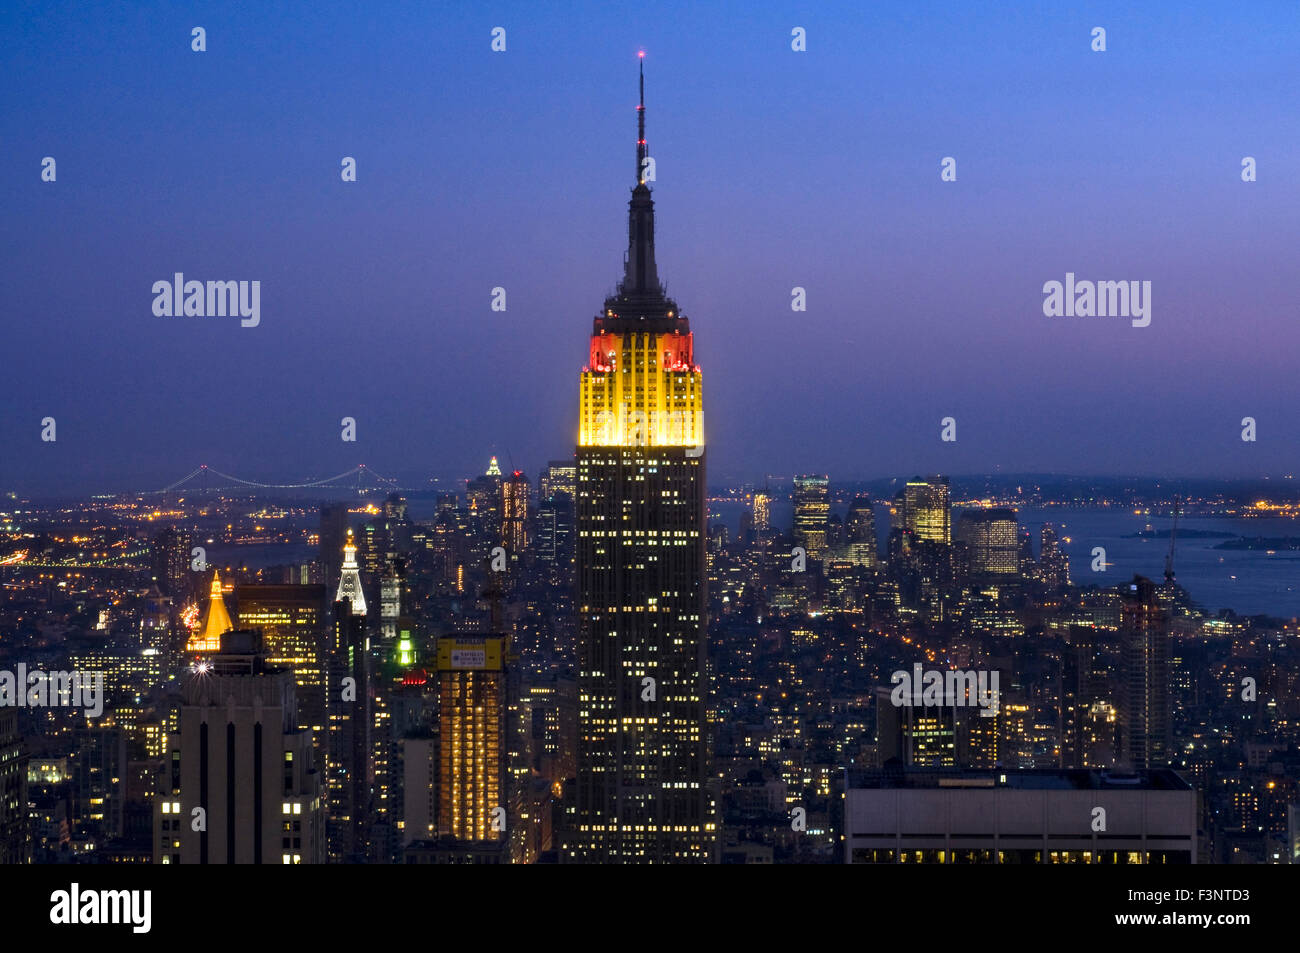 Empire State Building seen from Top of the Rock at Rockefeller Center. 350 Fifth Ave corner of 34th St. The Empire - Stock Image